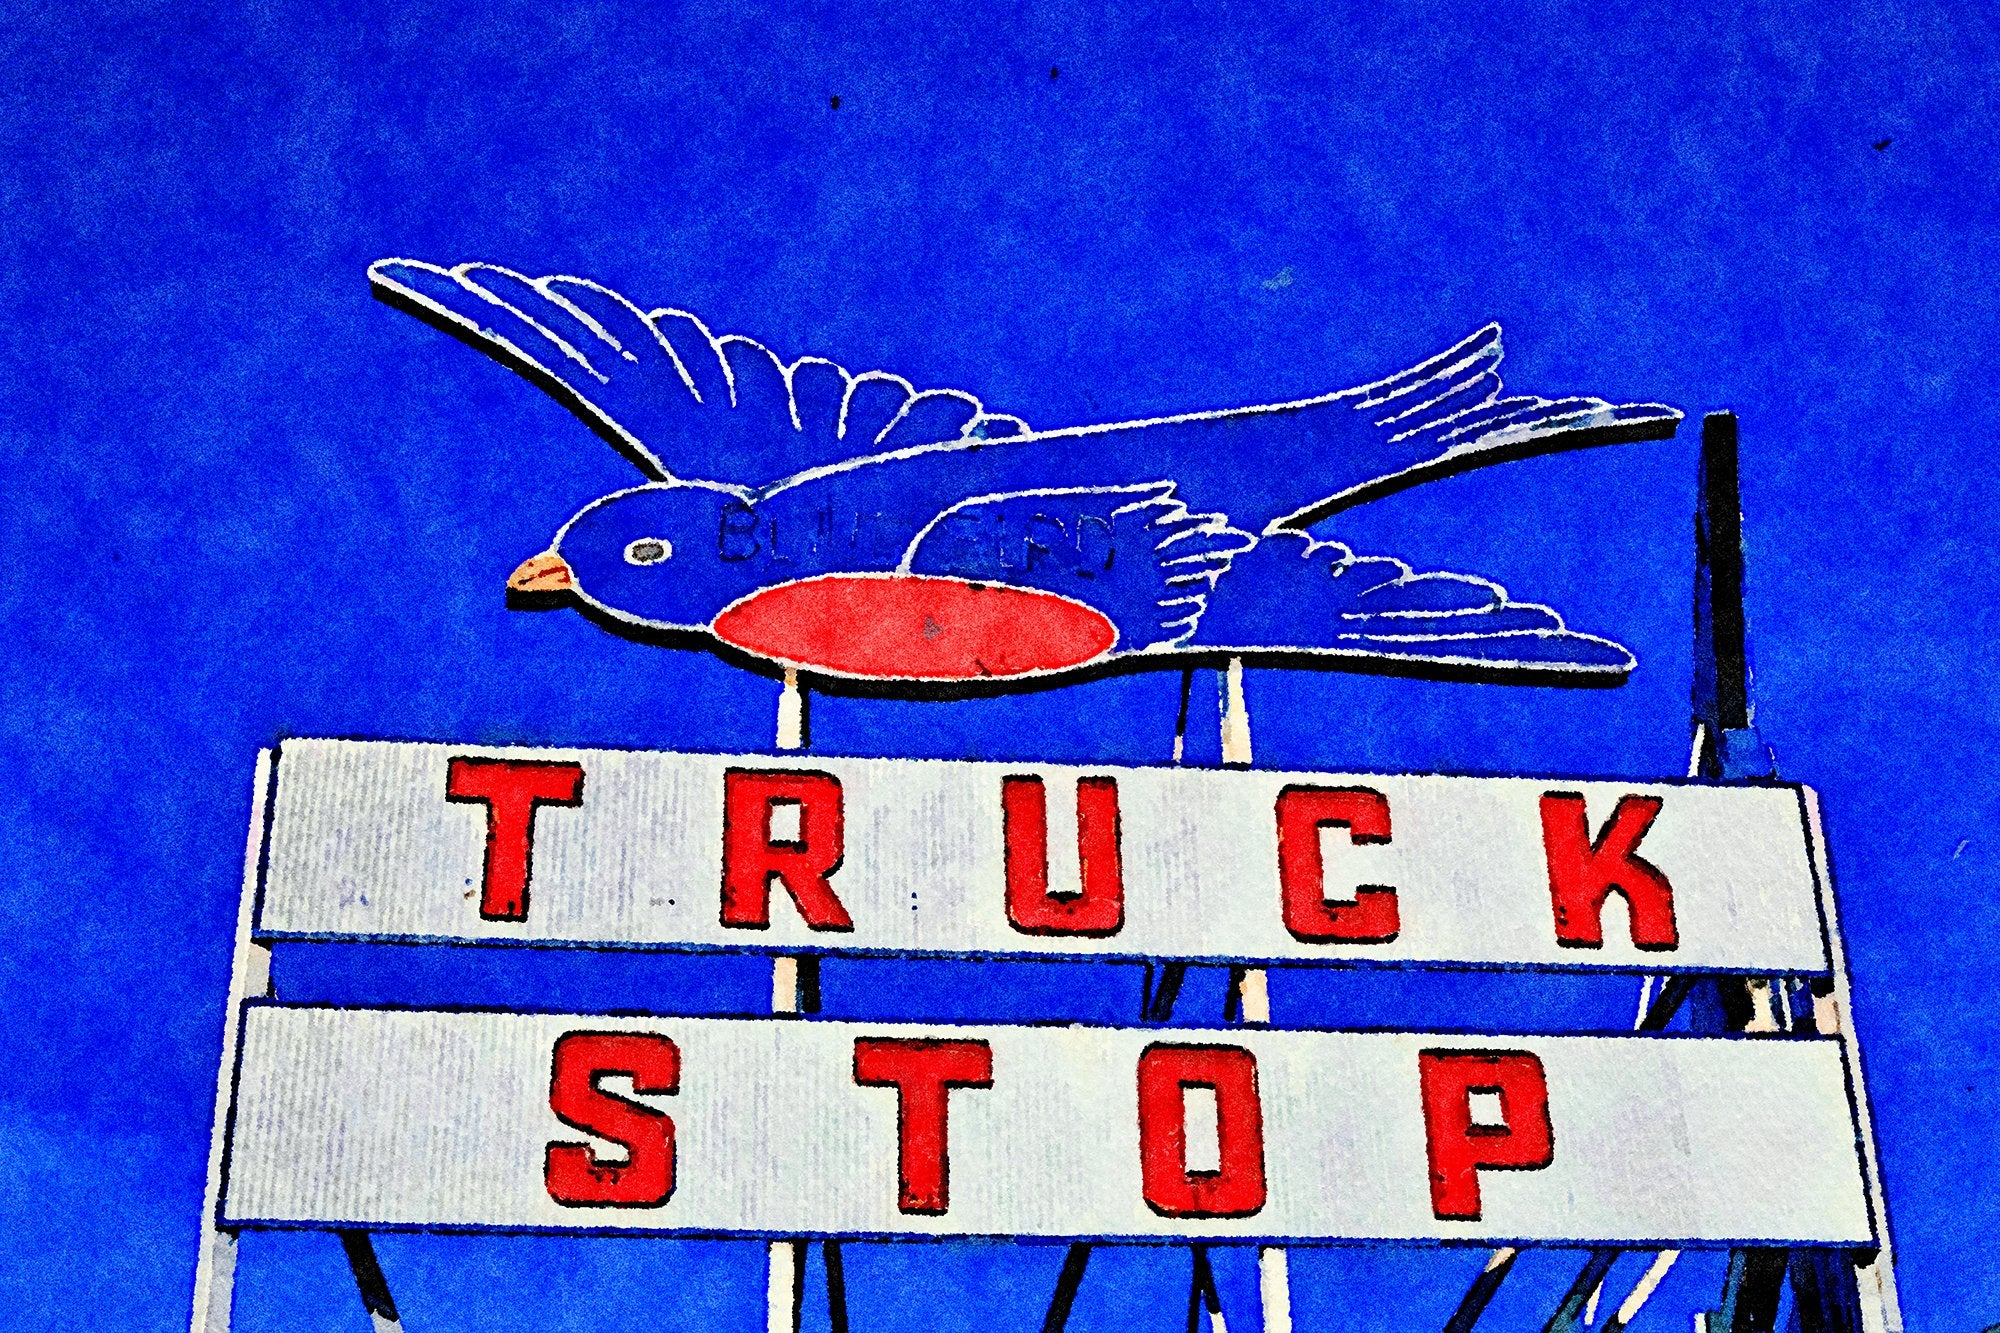 Blue Bird Truck Stop Sign, Pryor Street, Atlanta, Georgia, Reworked, Series 1